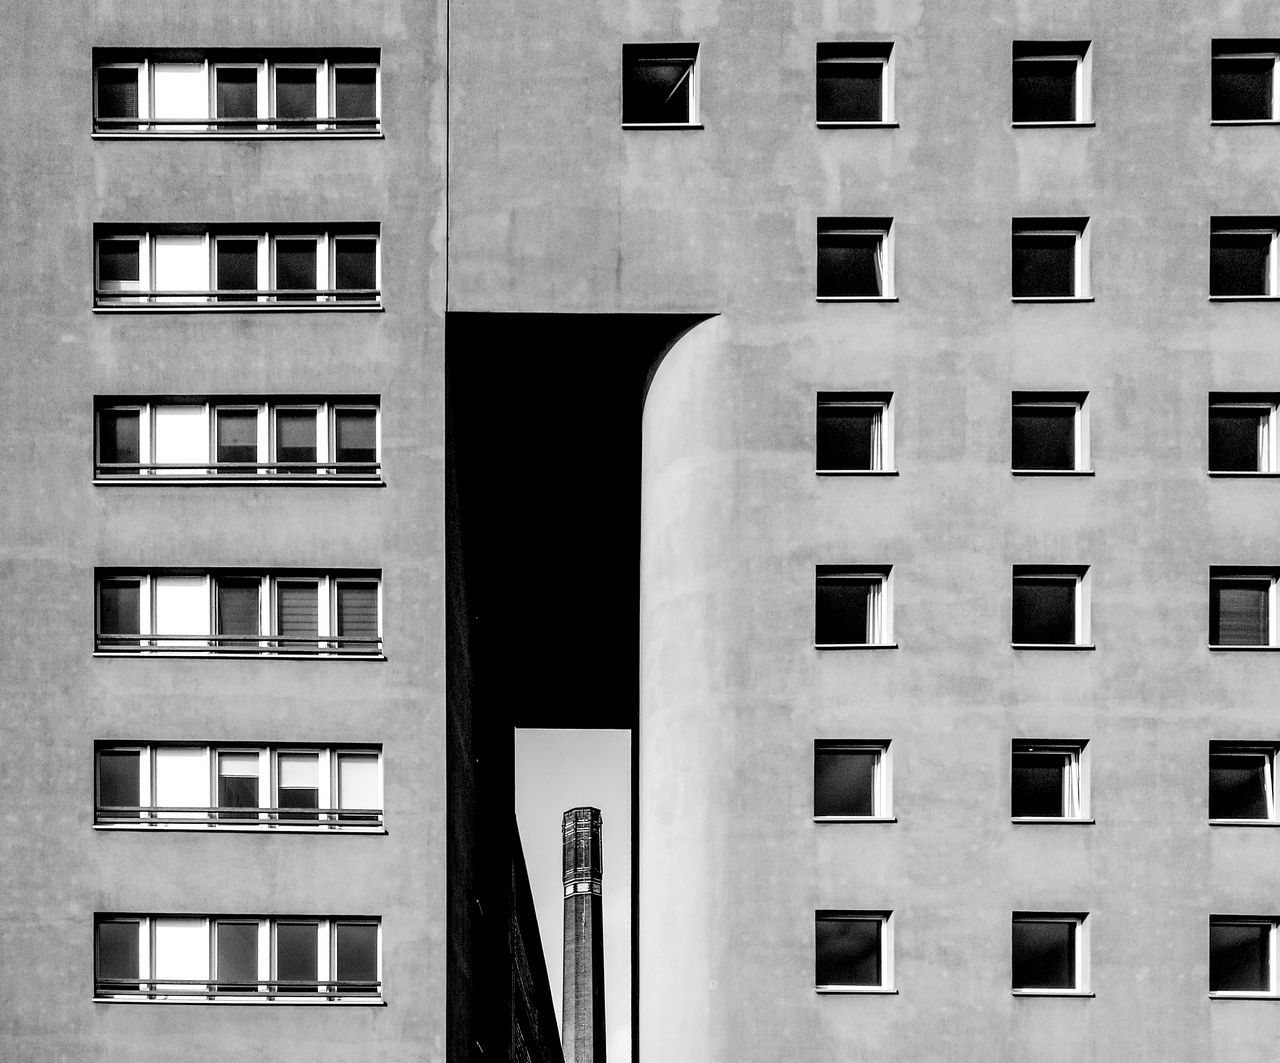 Viewthru Architectural Detail Architecture Architecture_bw Architecture_collection Balck And White Photography Berlin Berlin Black & White Berlin Monochrome Berlin Photography Berlin Schwarzweiss Black And White Berlin Building Exterior Built Structure Façade Huawei Monochrome HuaweiP9 Huaweiphotography Monochrome Monochrome Berlin Schwarzweiß